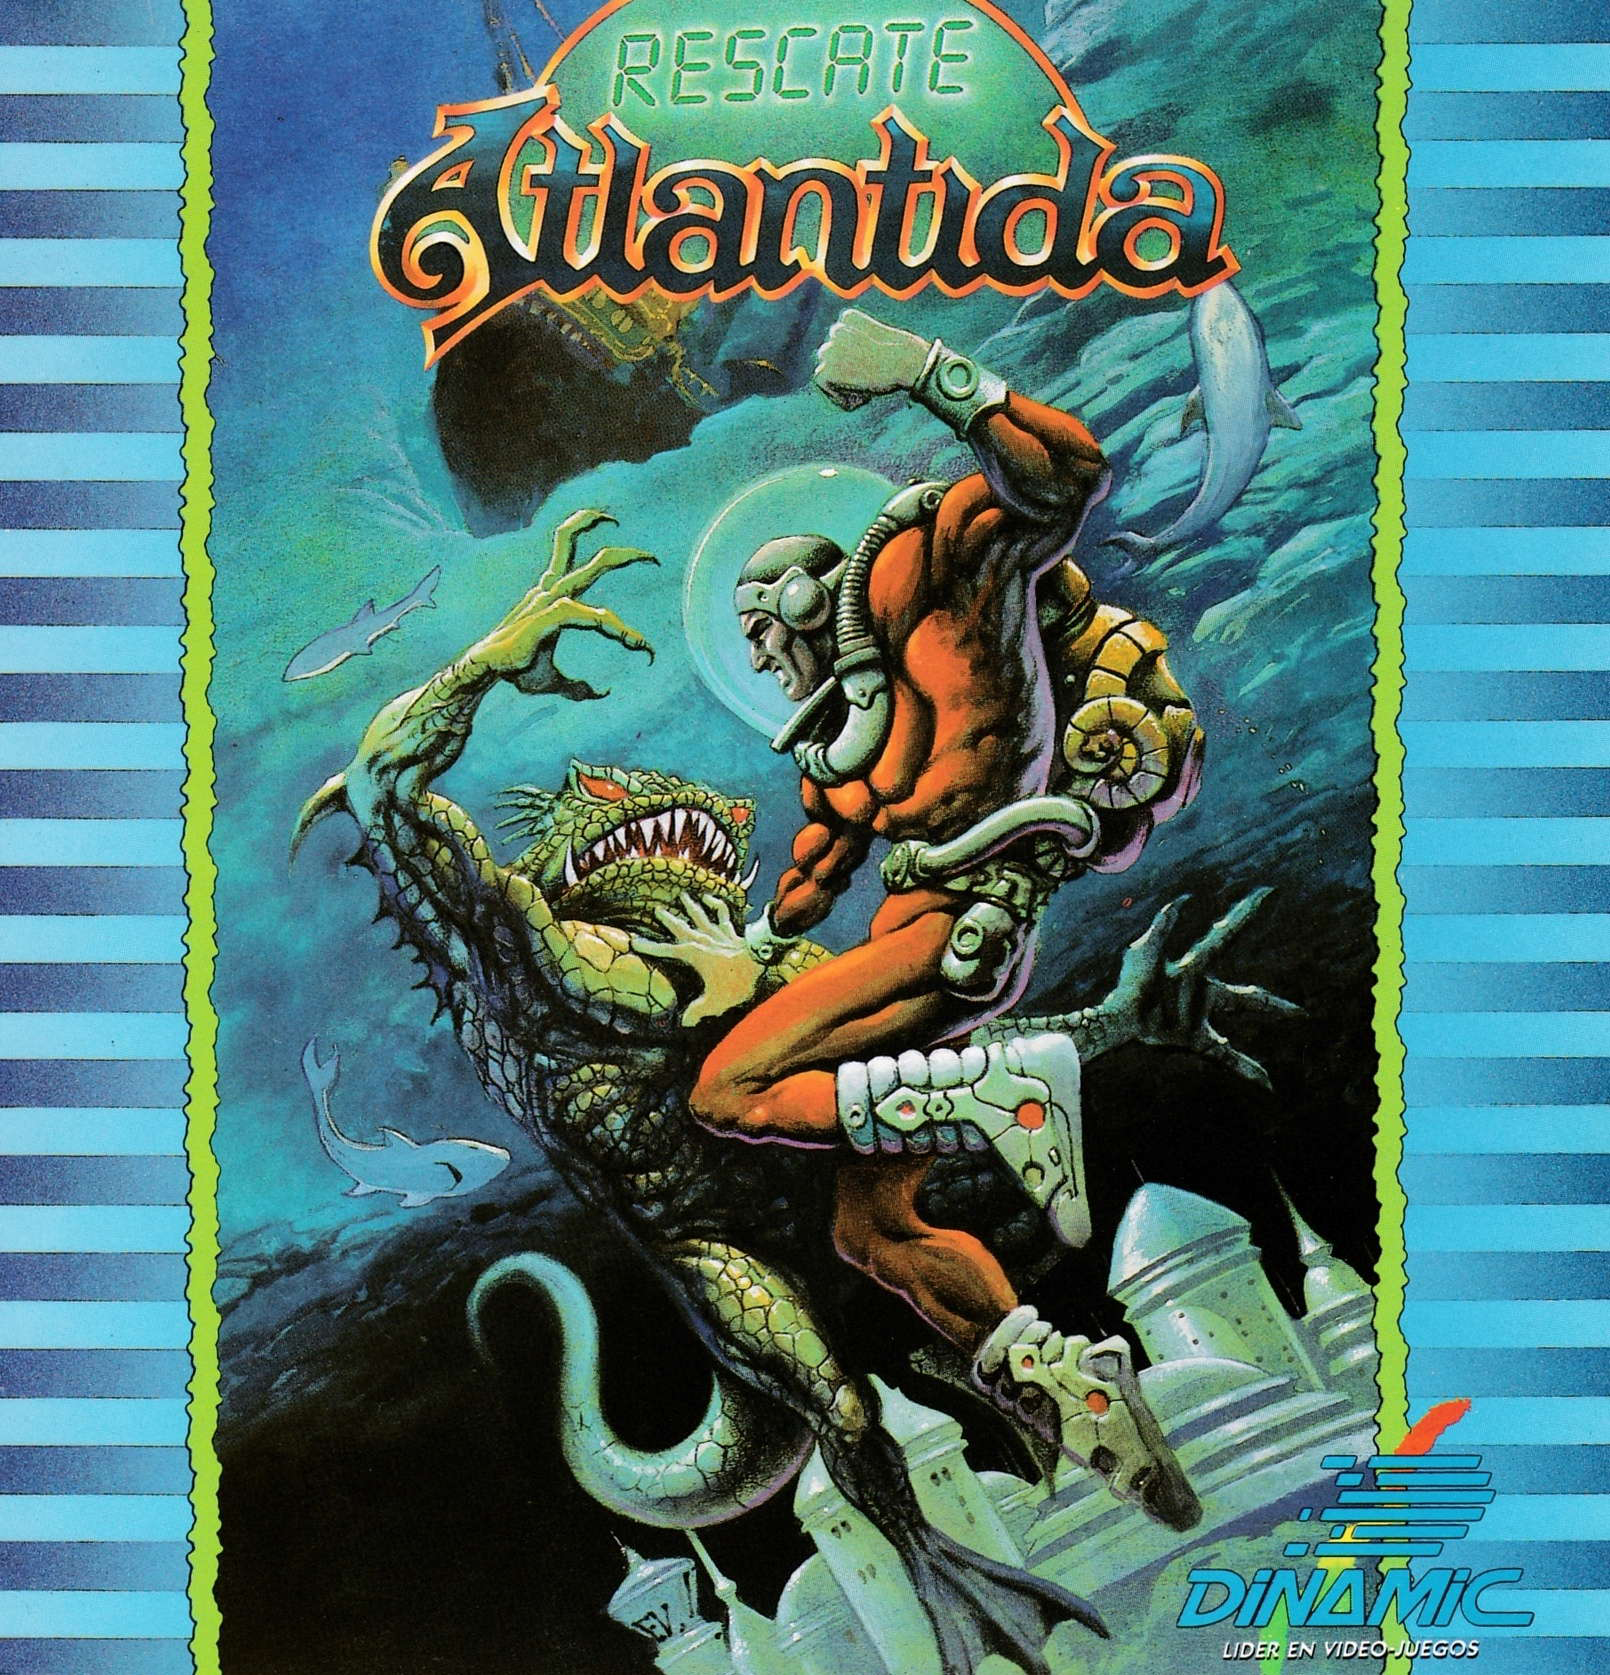 cover of the Amstrad CPC game Rescate Atlantida  by GameBase CPC